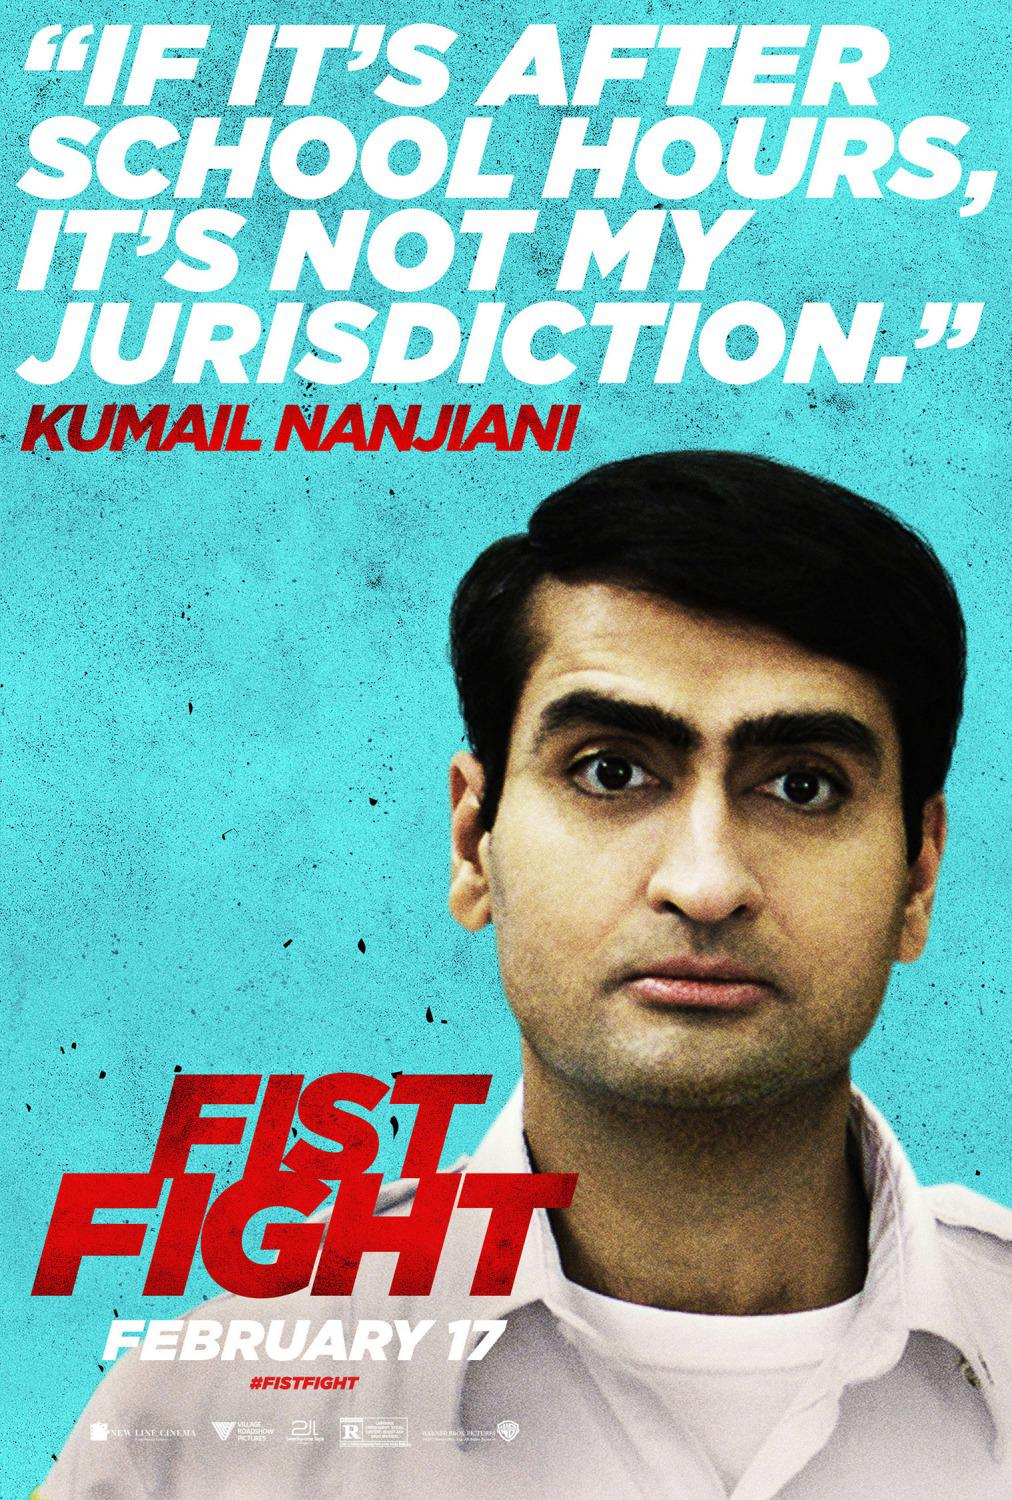 Fist Fight - If it's after school hours it's not my jurisdiction - Kumail Nanjiani